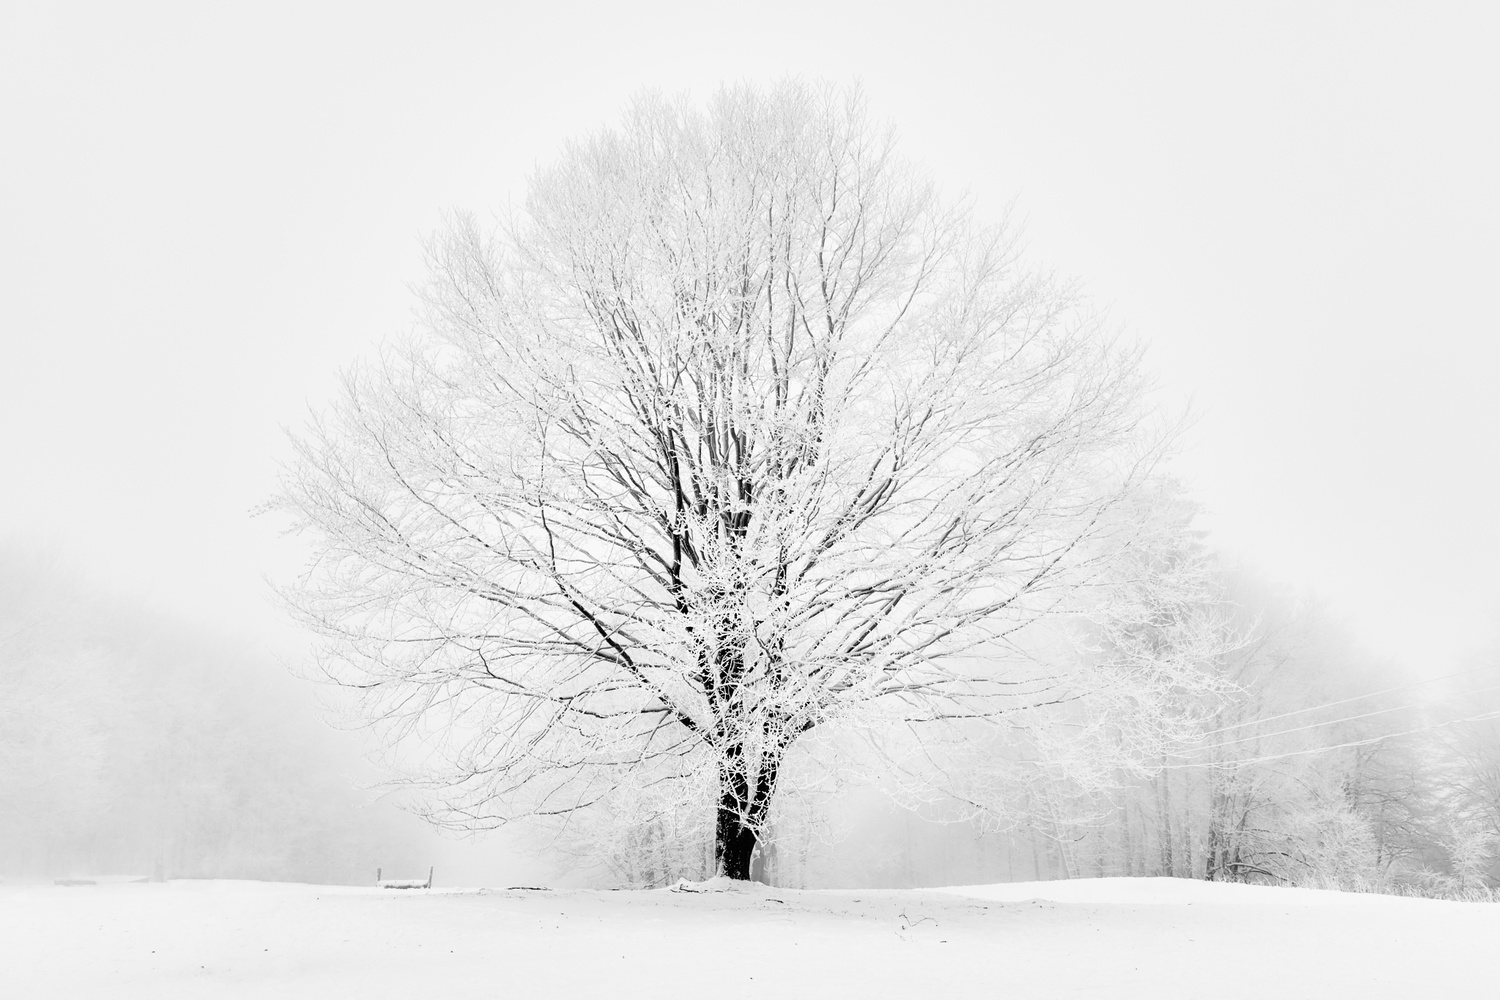 Contrast by Zsolt Seres